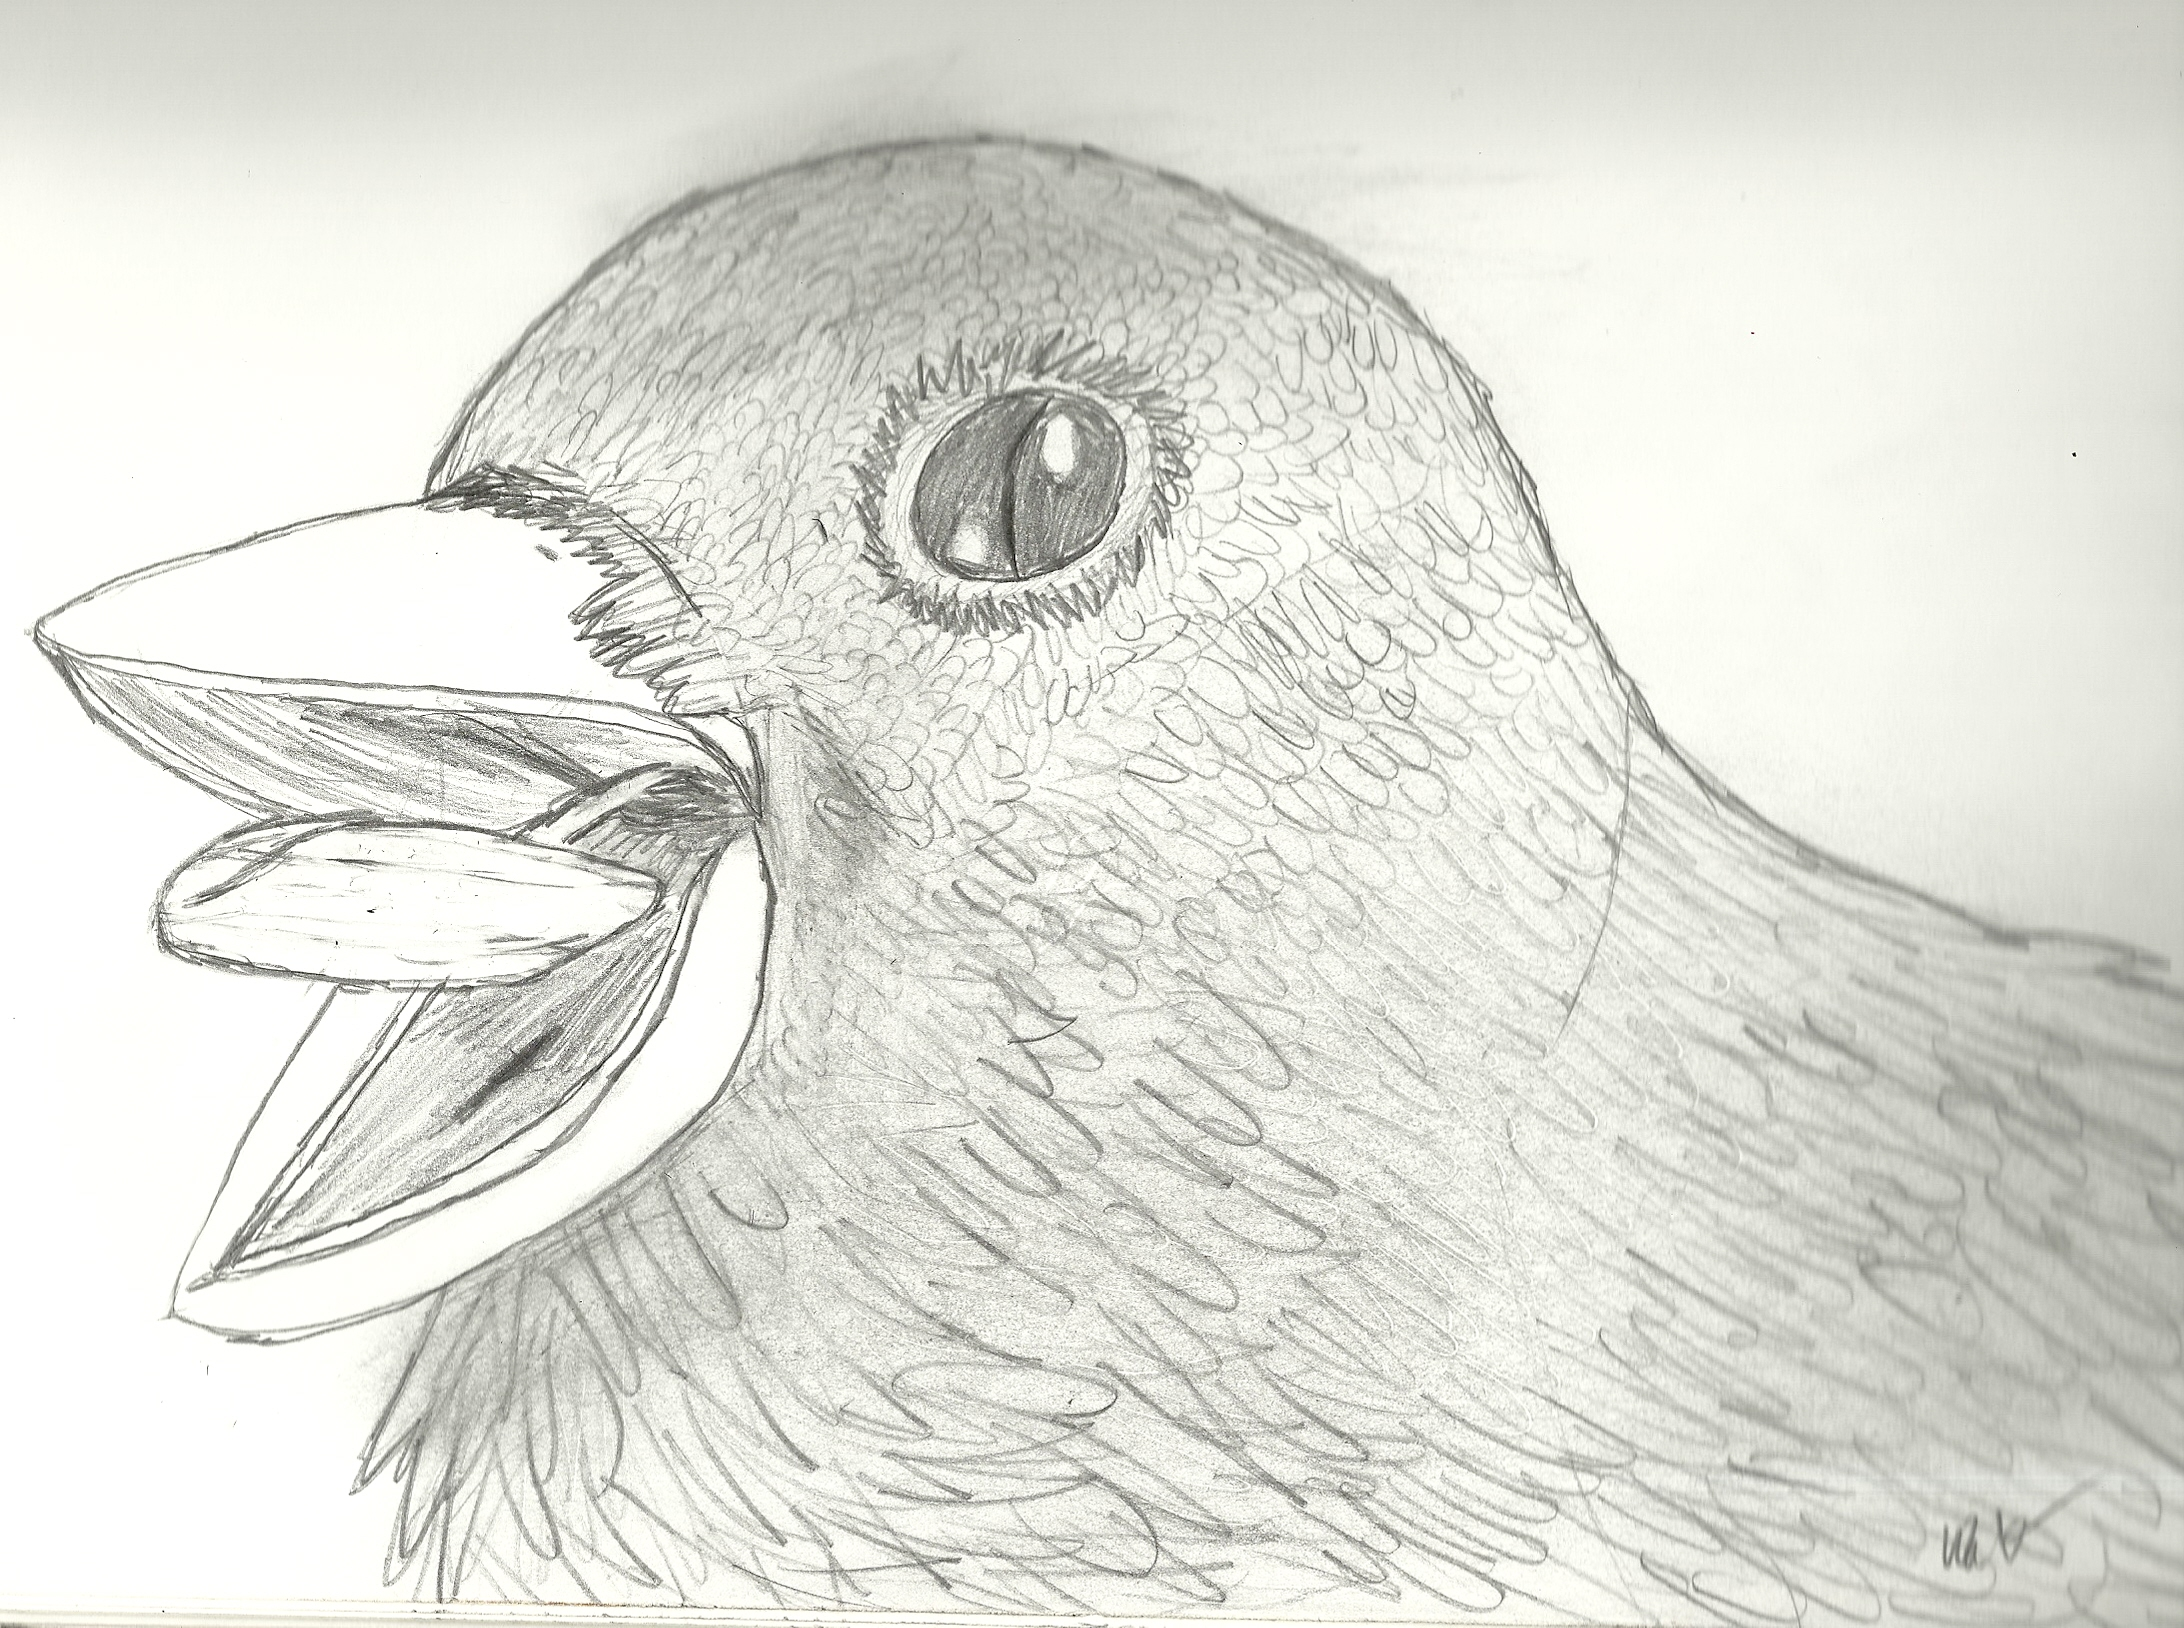 Sketch of a Bird